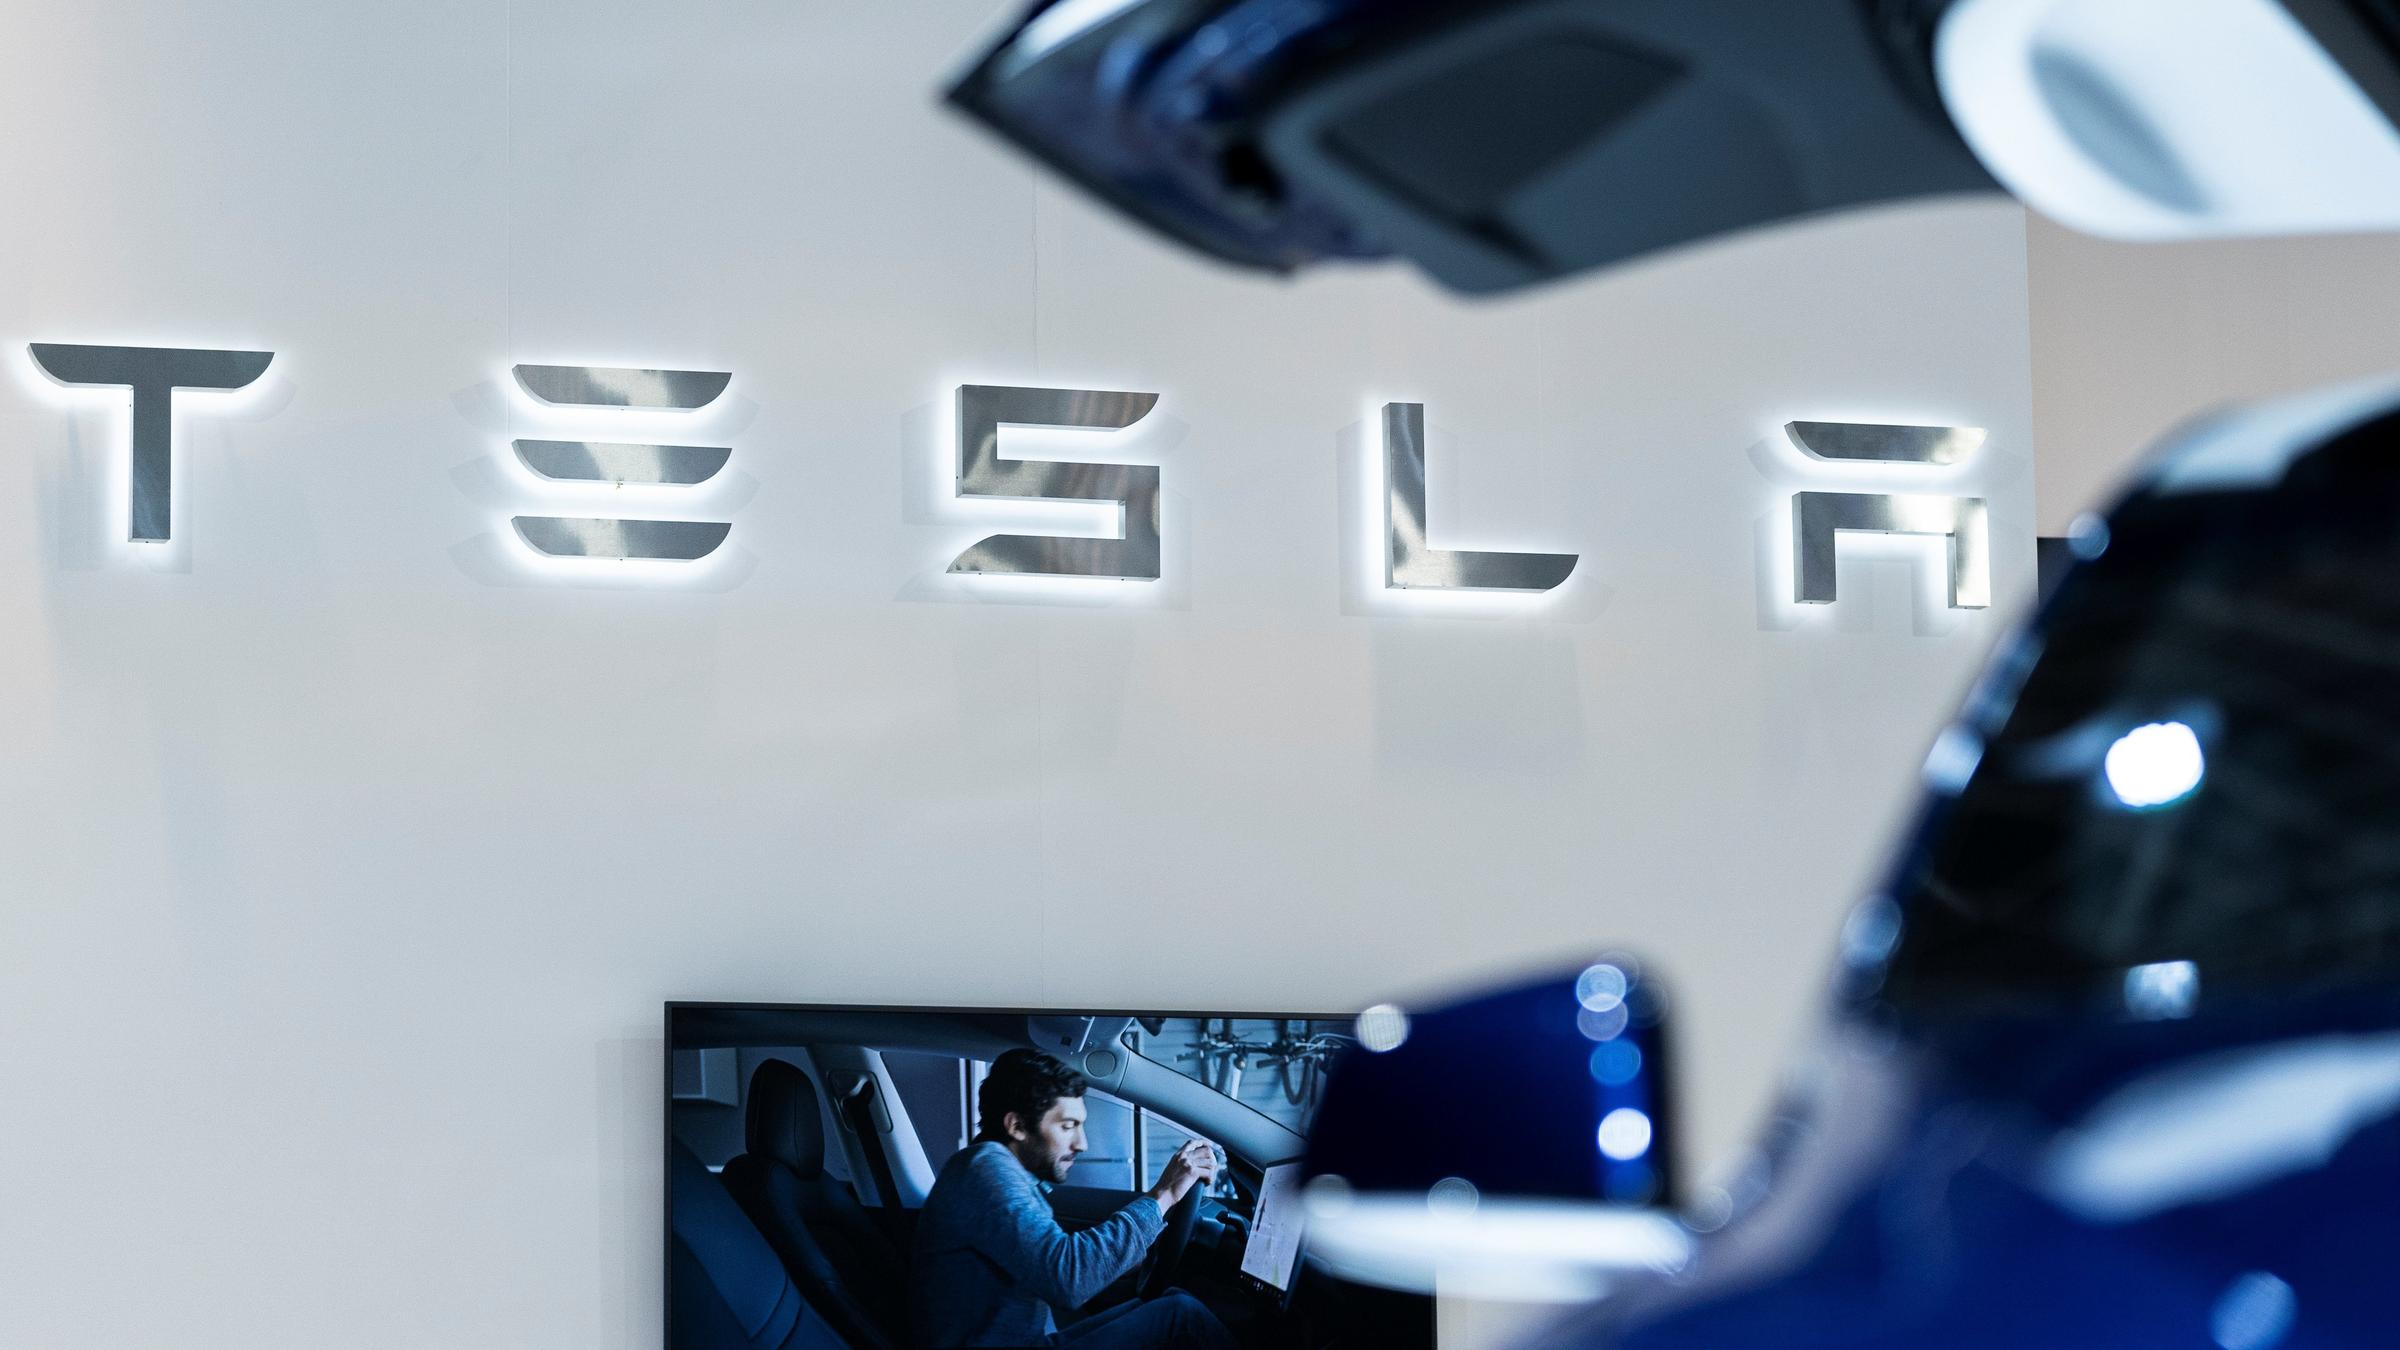 Tesla surprises Wall Street with Q1 profit